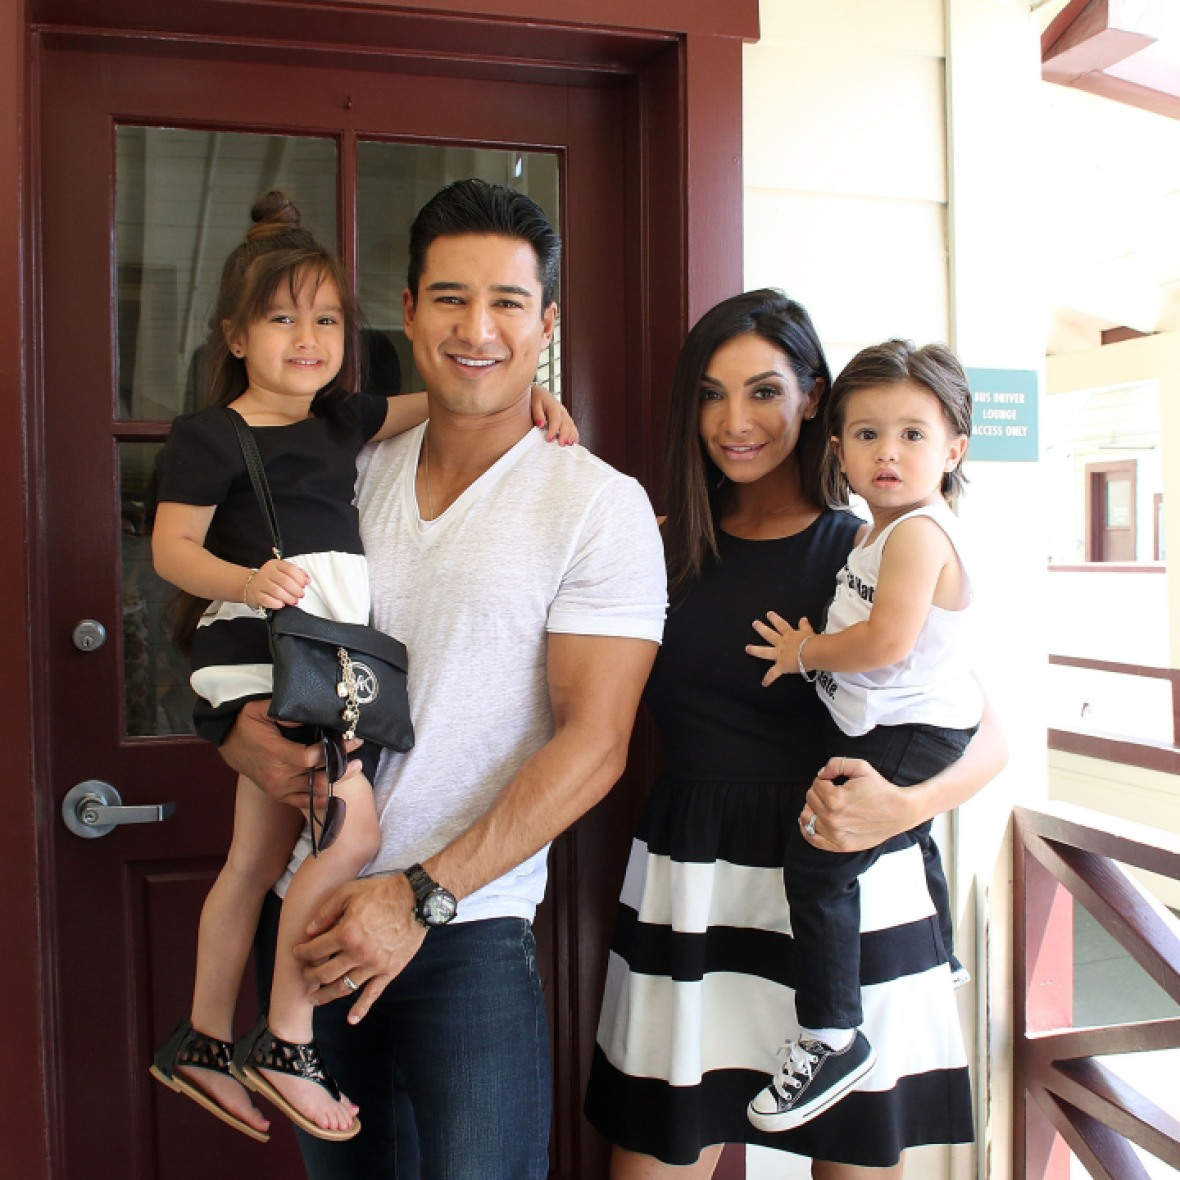 mario lopez courtney lopez getty images